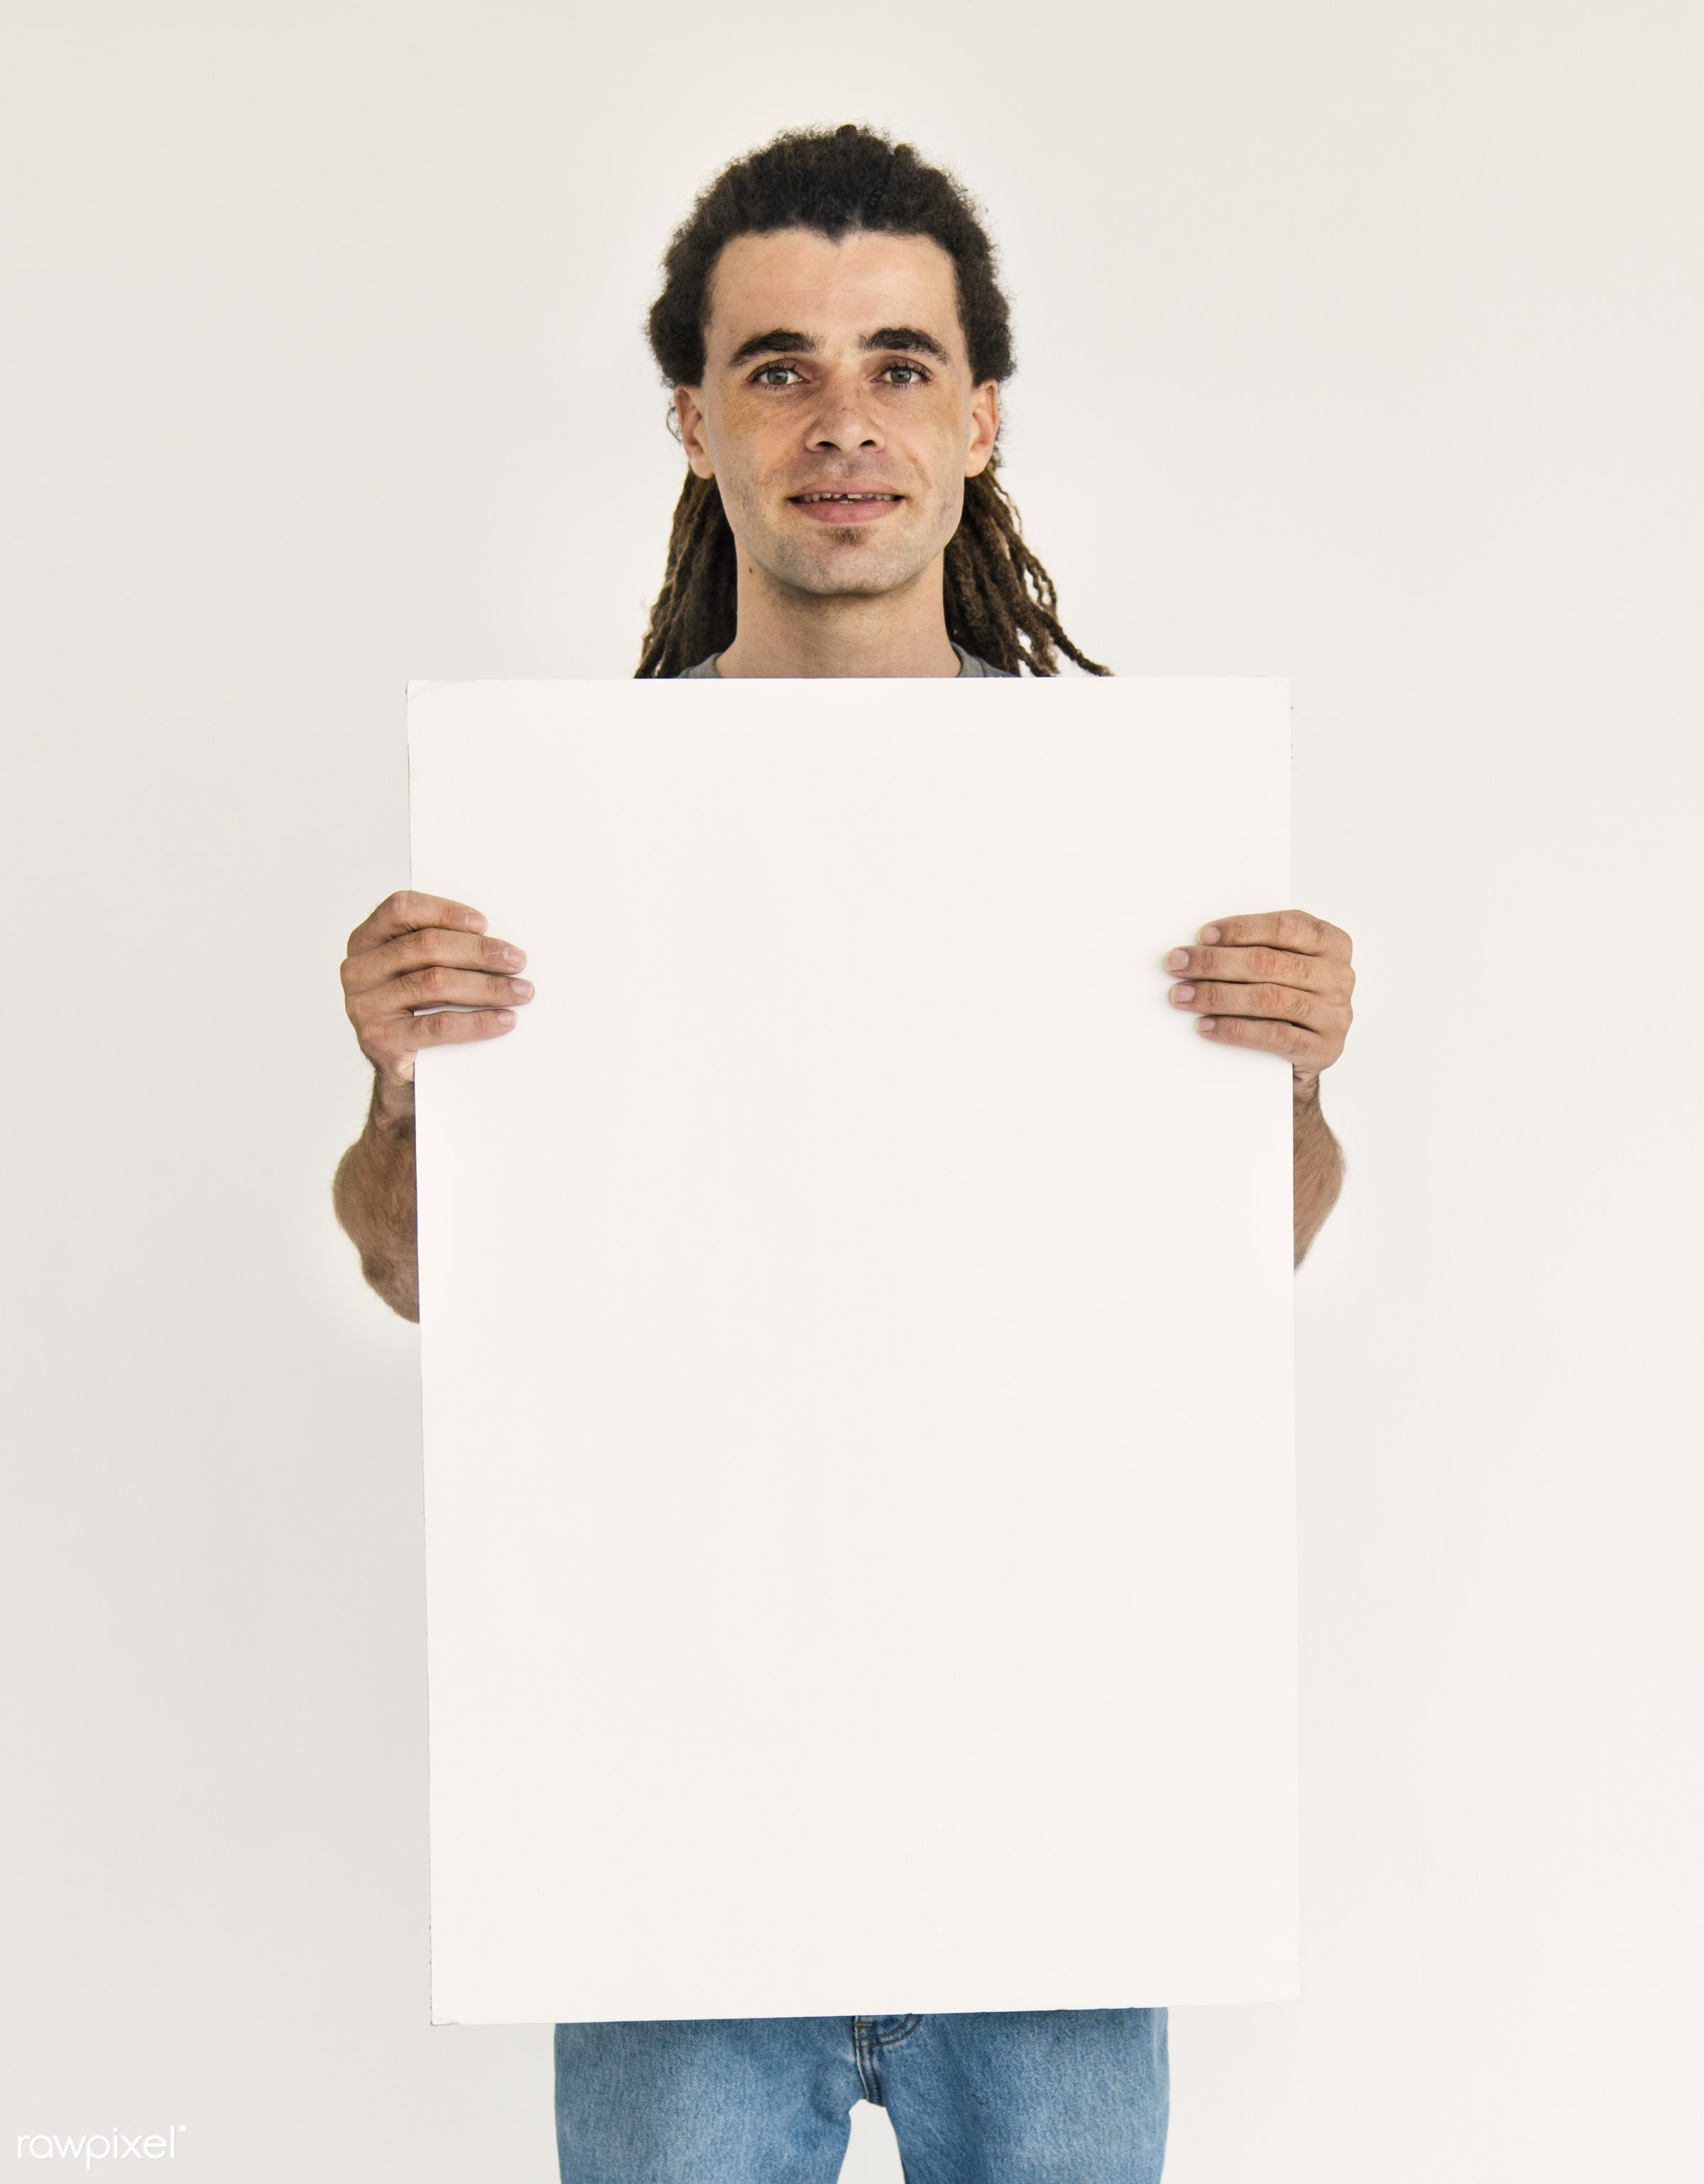 adult, background, banner, billboard, blank, board, canvas, casual, cheerful, concept, copy space, dredlocks, empty,...